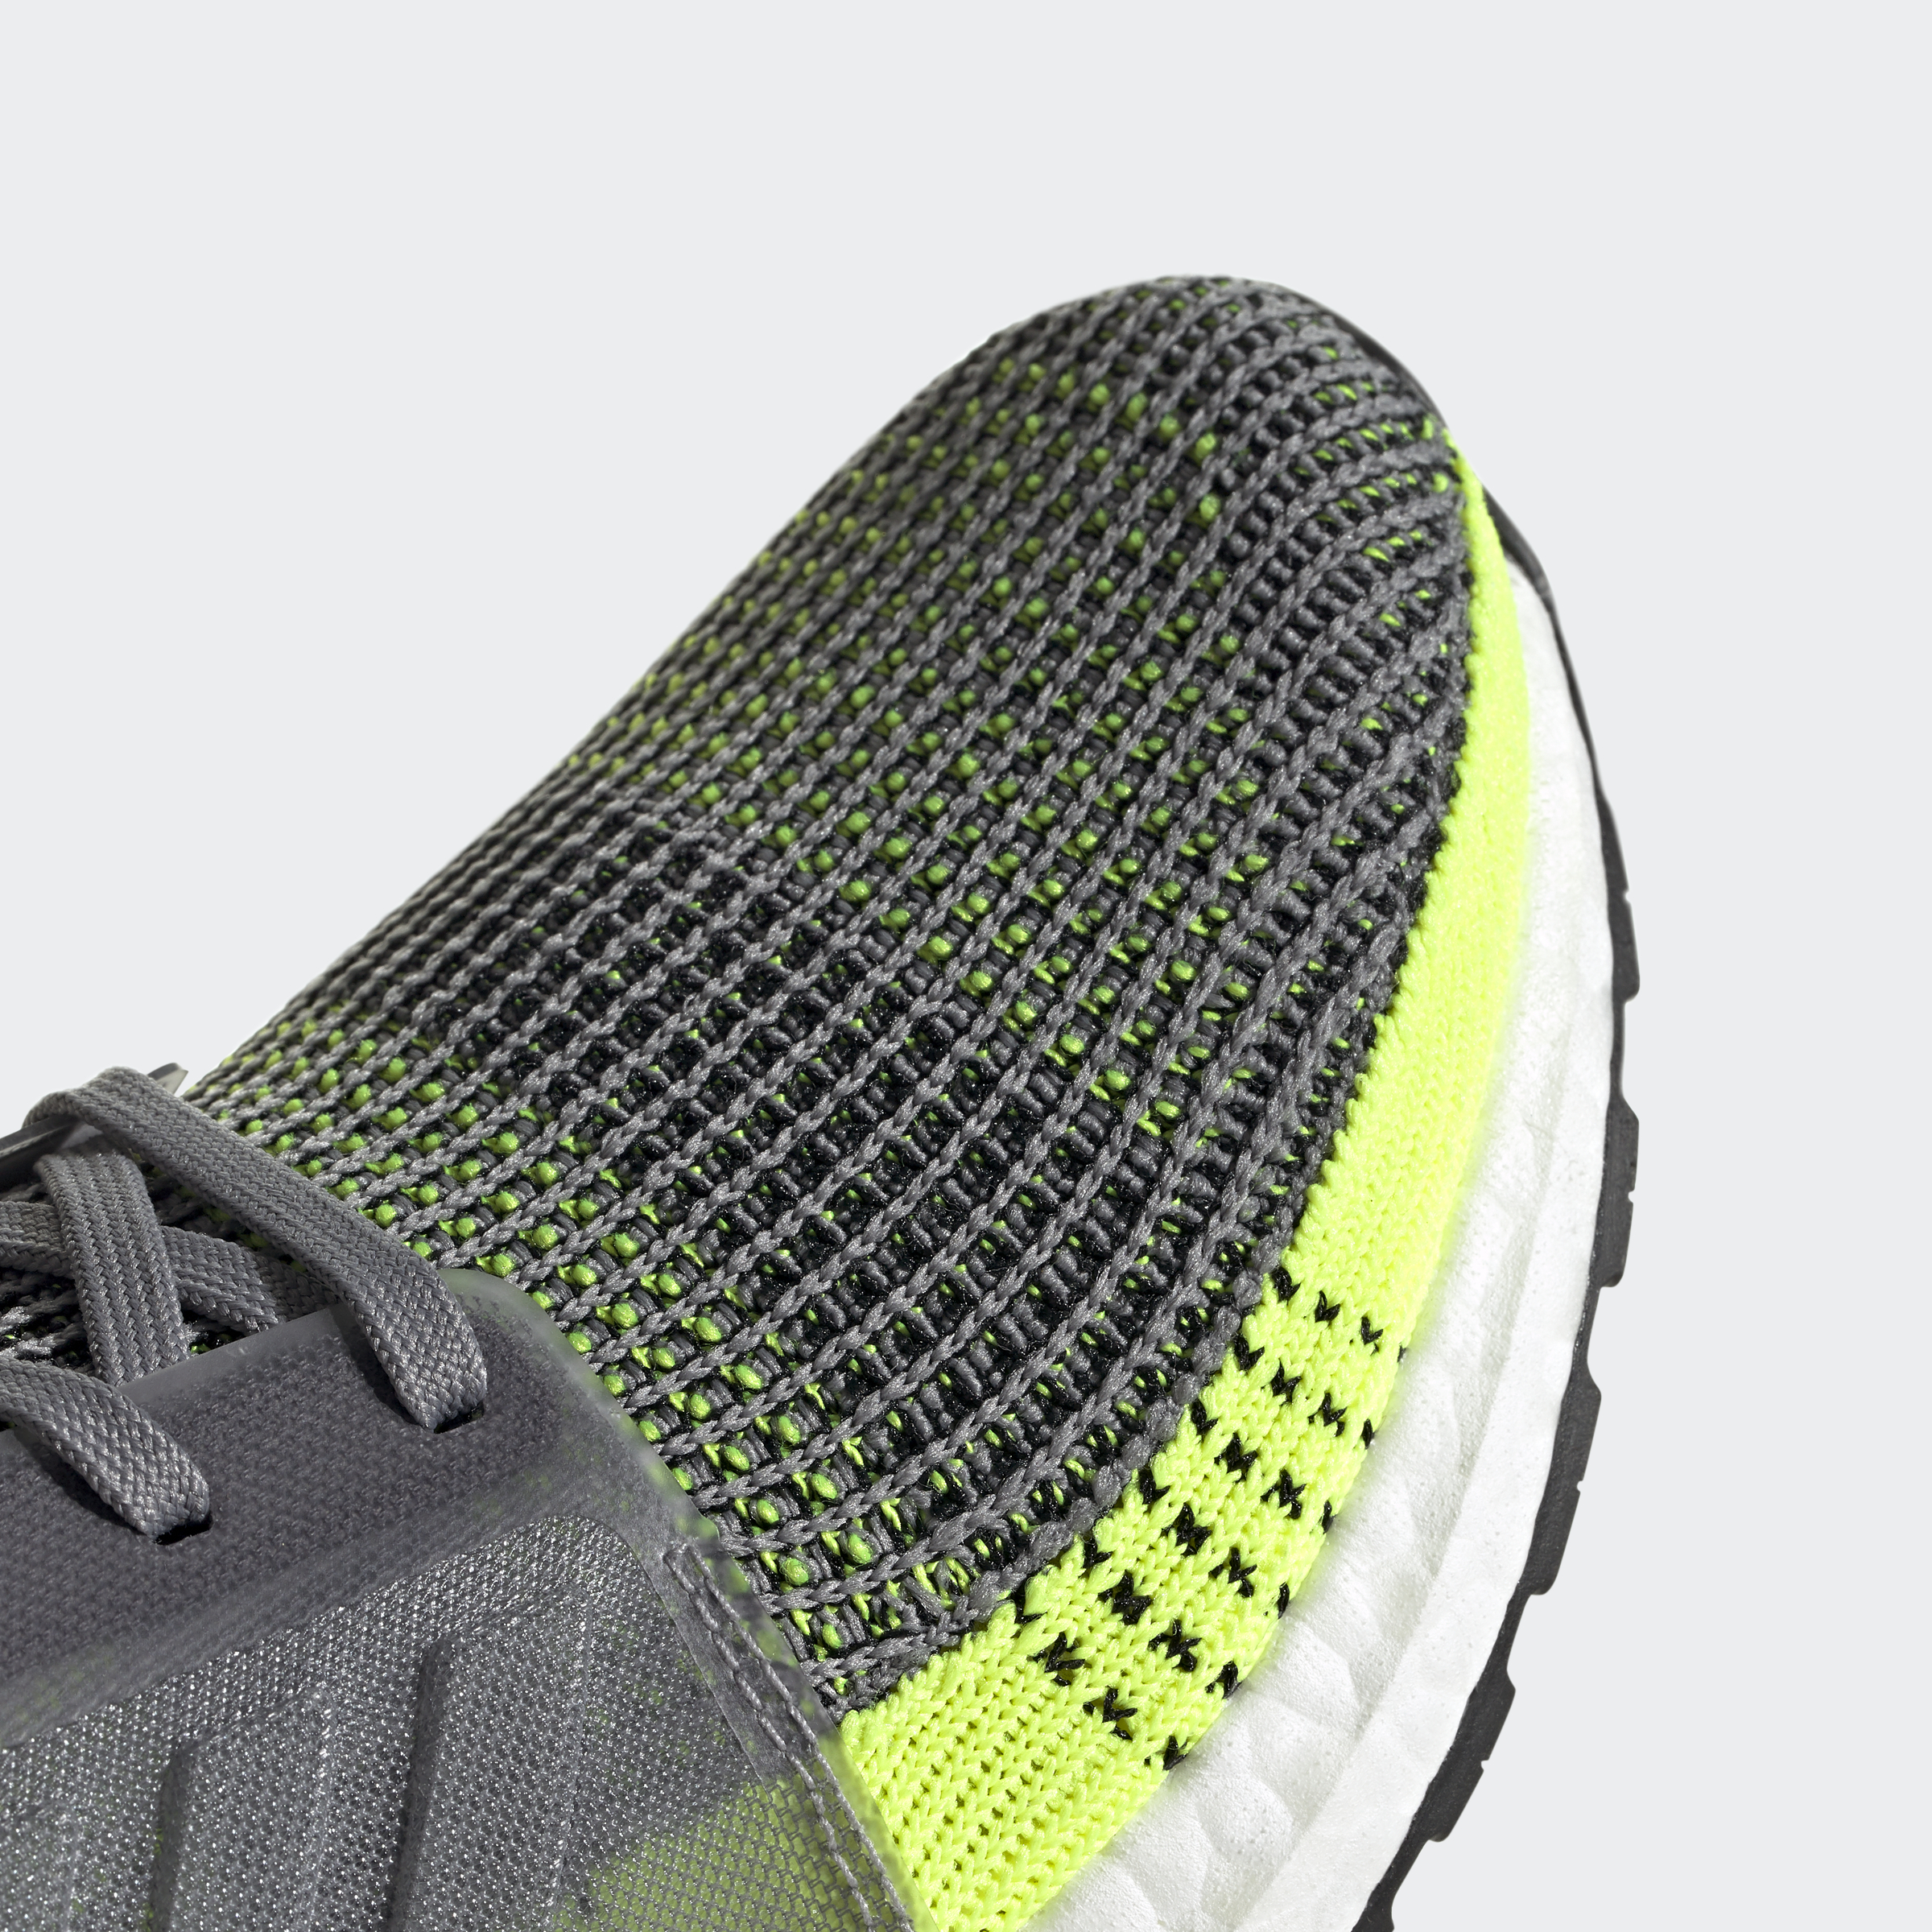 adidas-Ultraboost-19-Shoes-Athletic-amp-Sneakers thumbnail 29